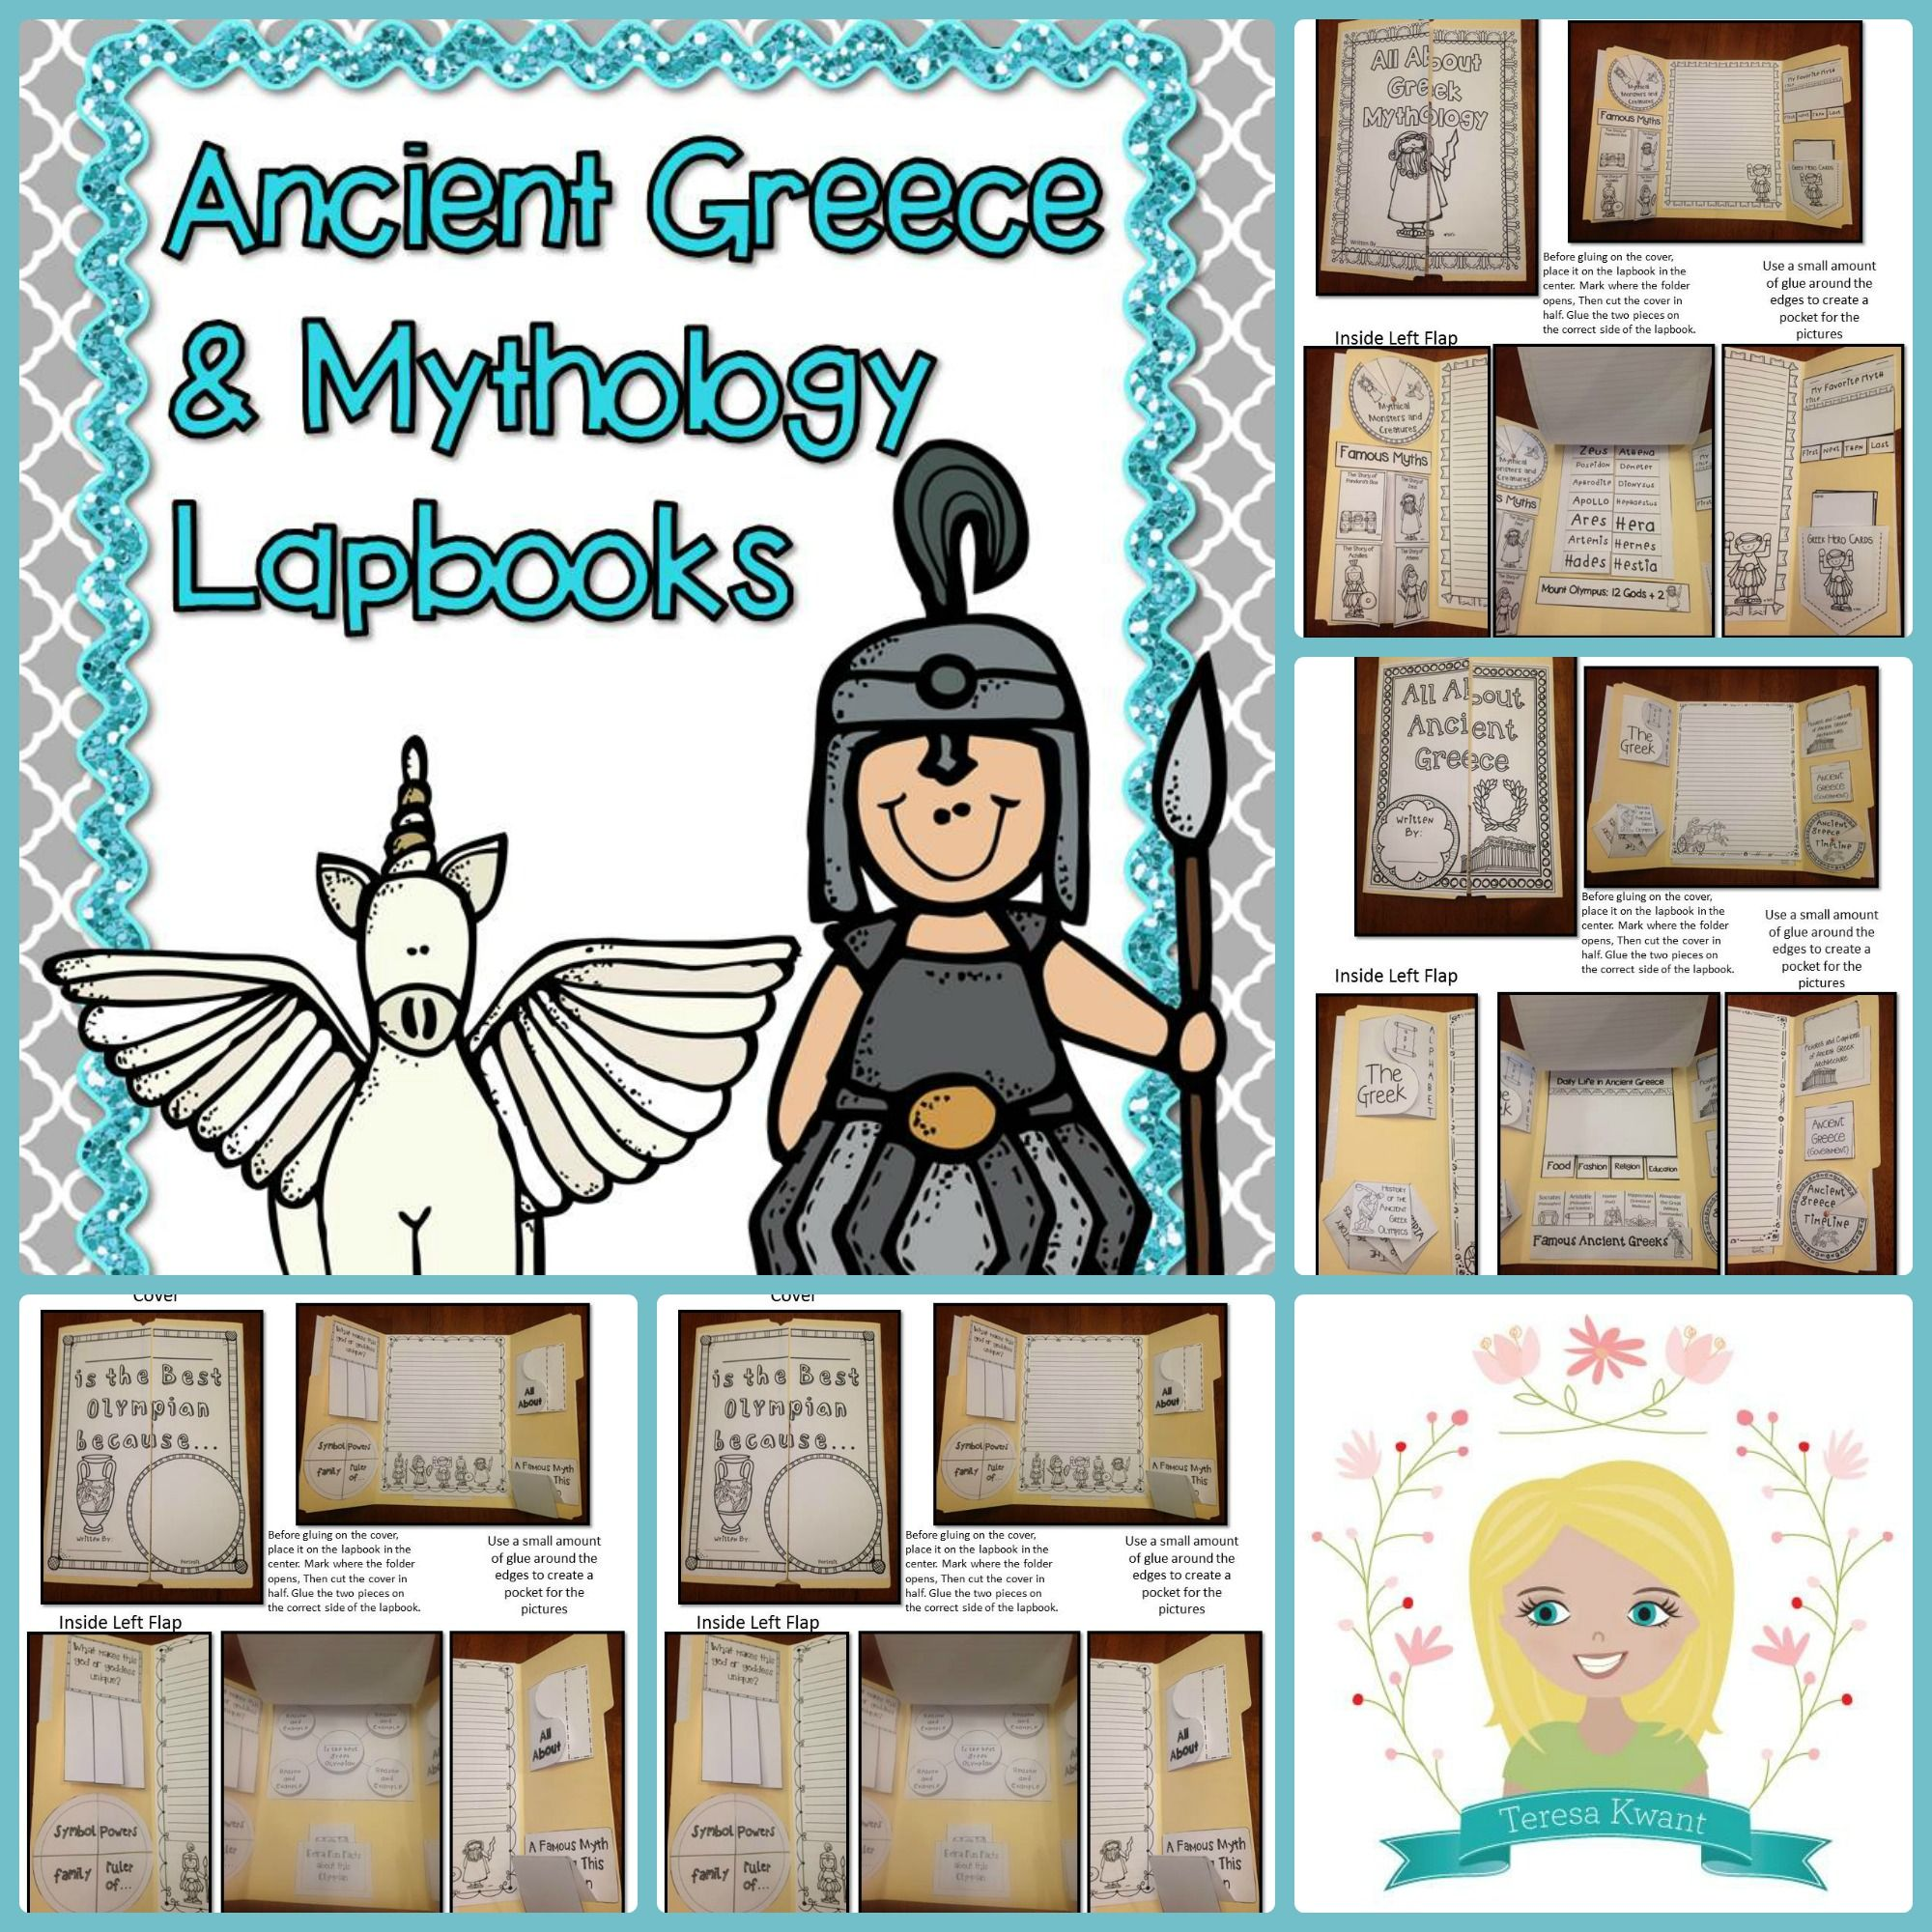 myth essay ancient and greek mythology lapbooks ancient com mr  ancient and greek mythology lapbooks ancient ideas